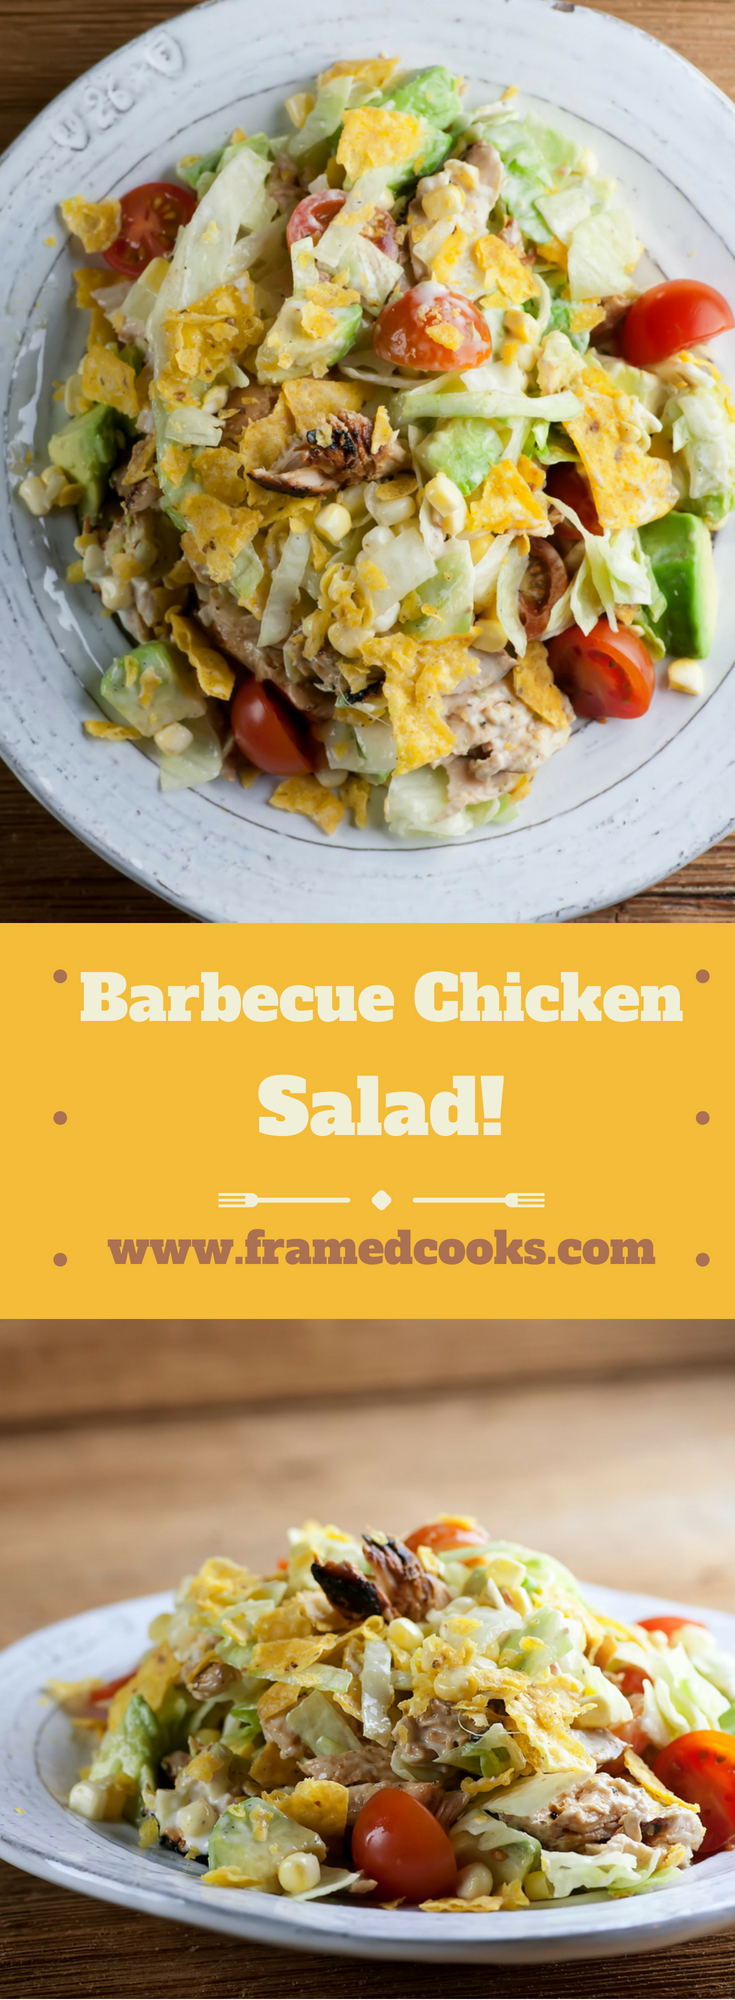 This easy barbecue chicken salad recipe features the great flavors of grilled chicken with summer veggies and a tangy ranch dressing!